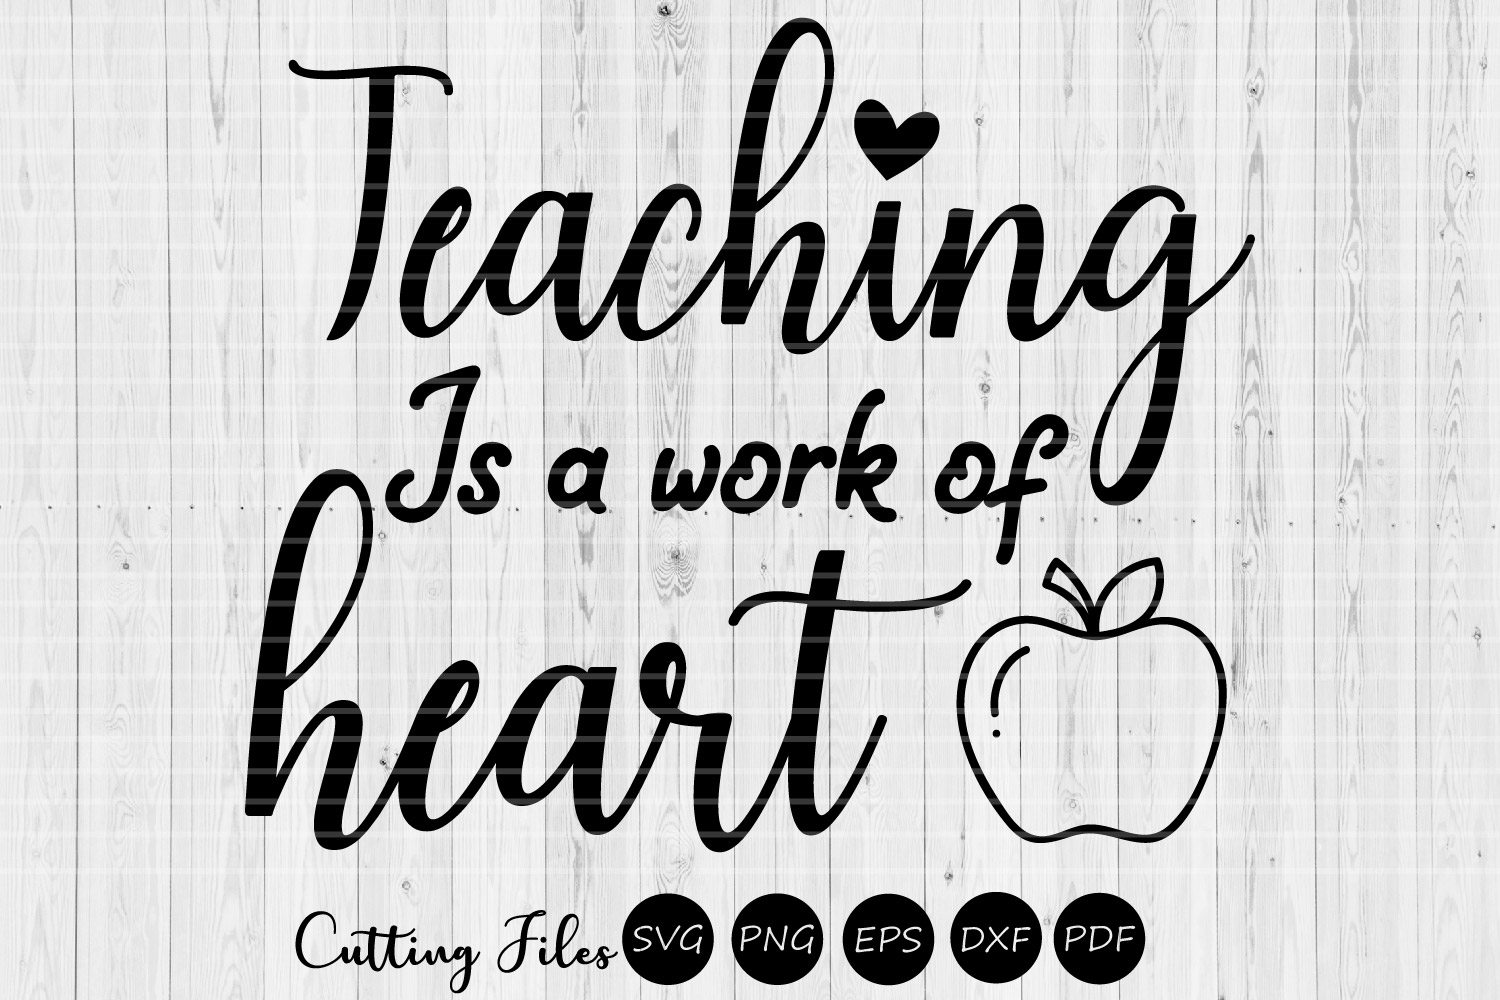 Teaching is a work of heart| SVG cutting files | Cricut | example image 1